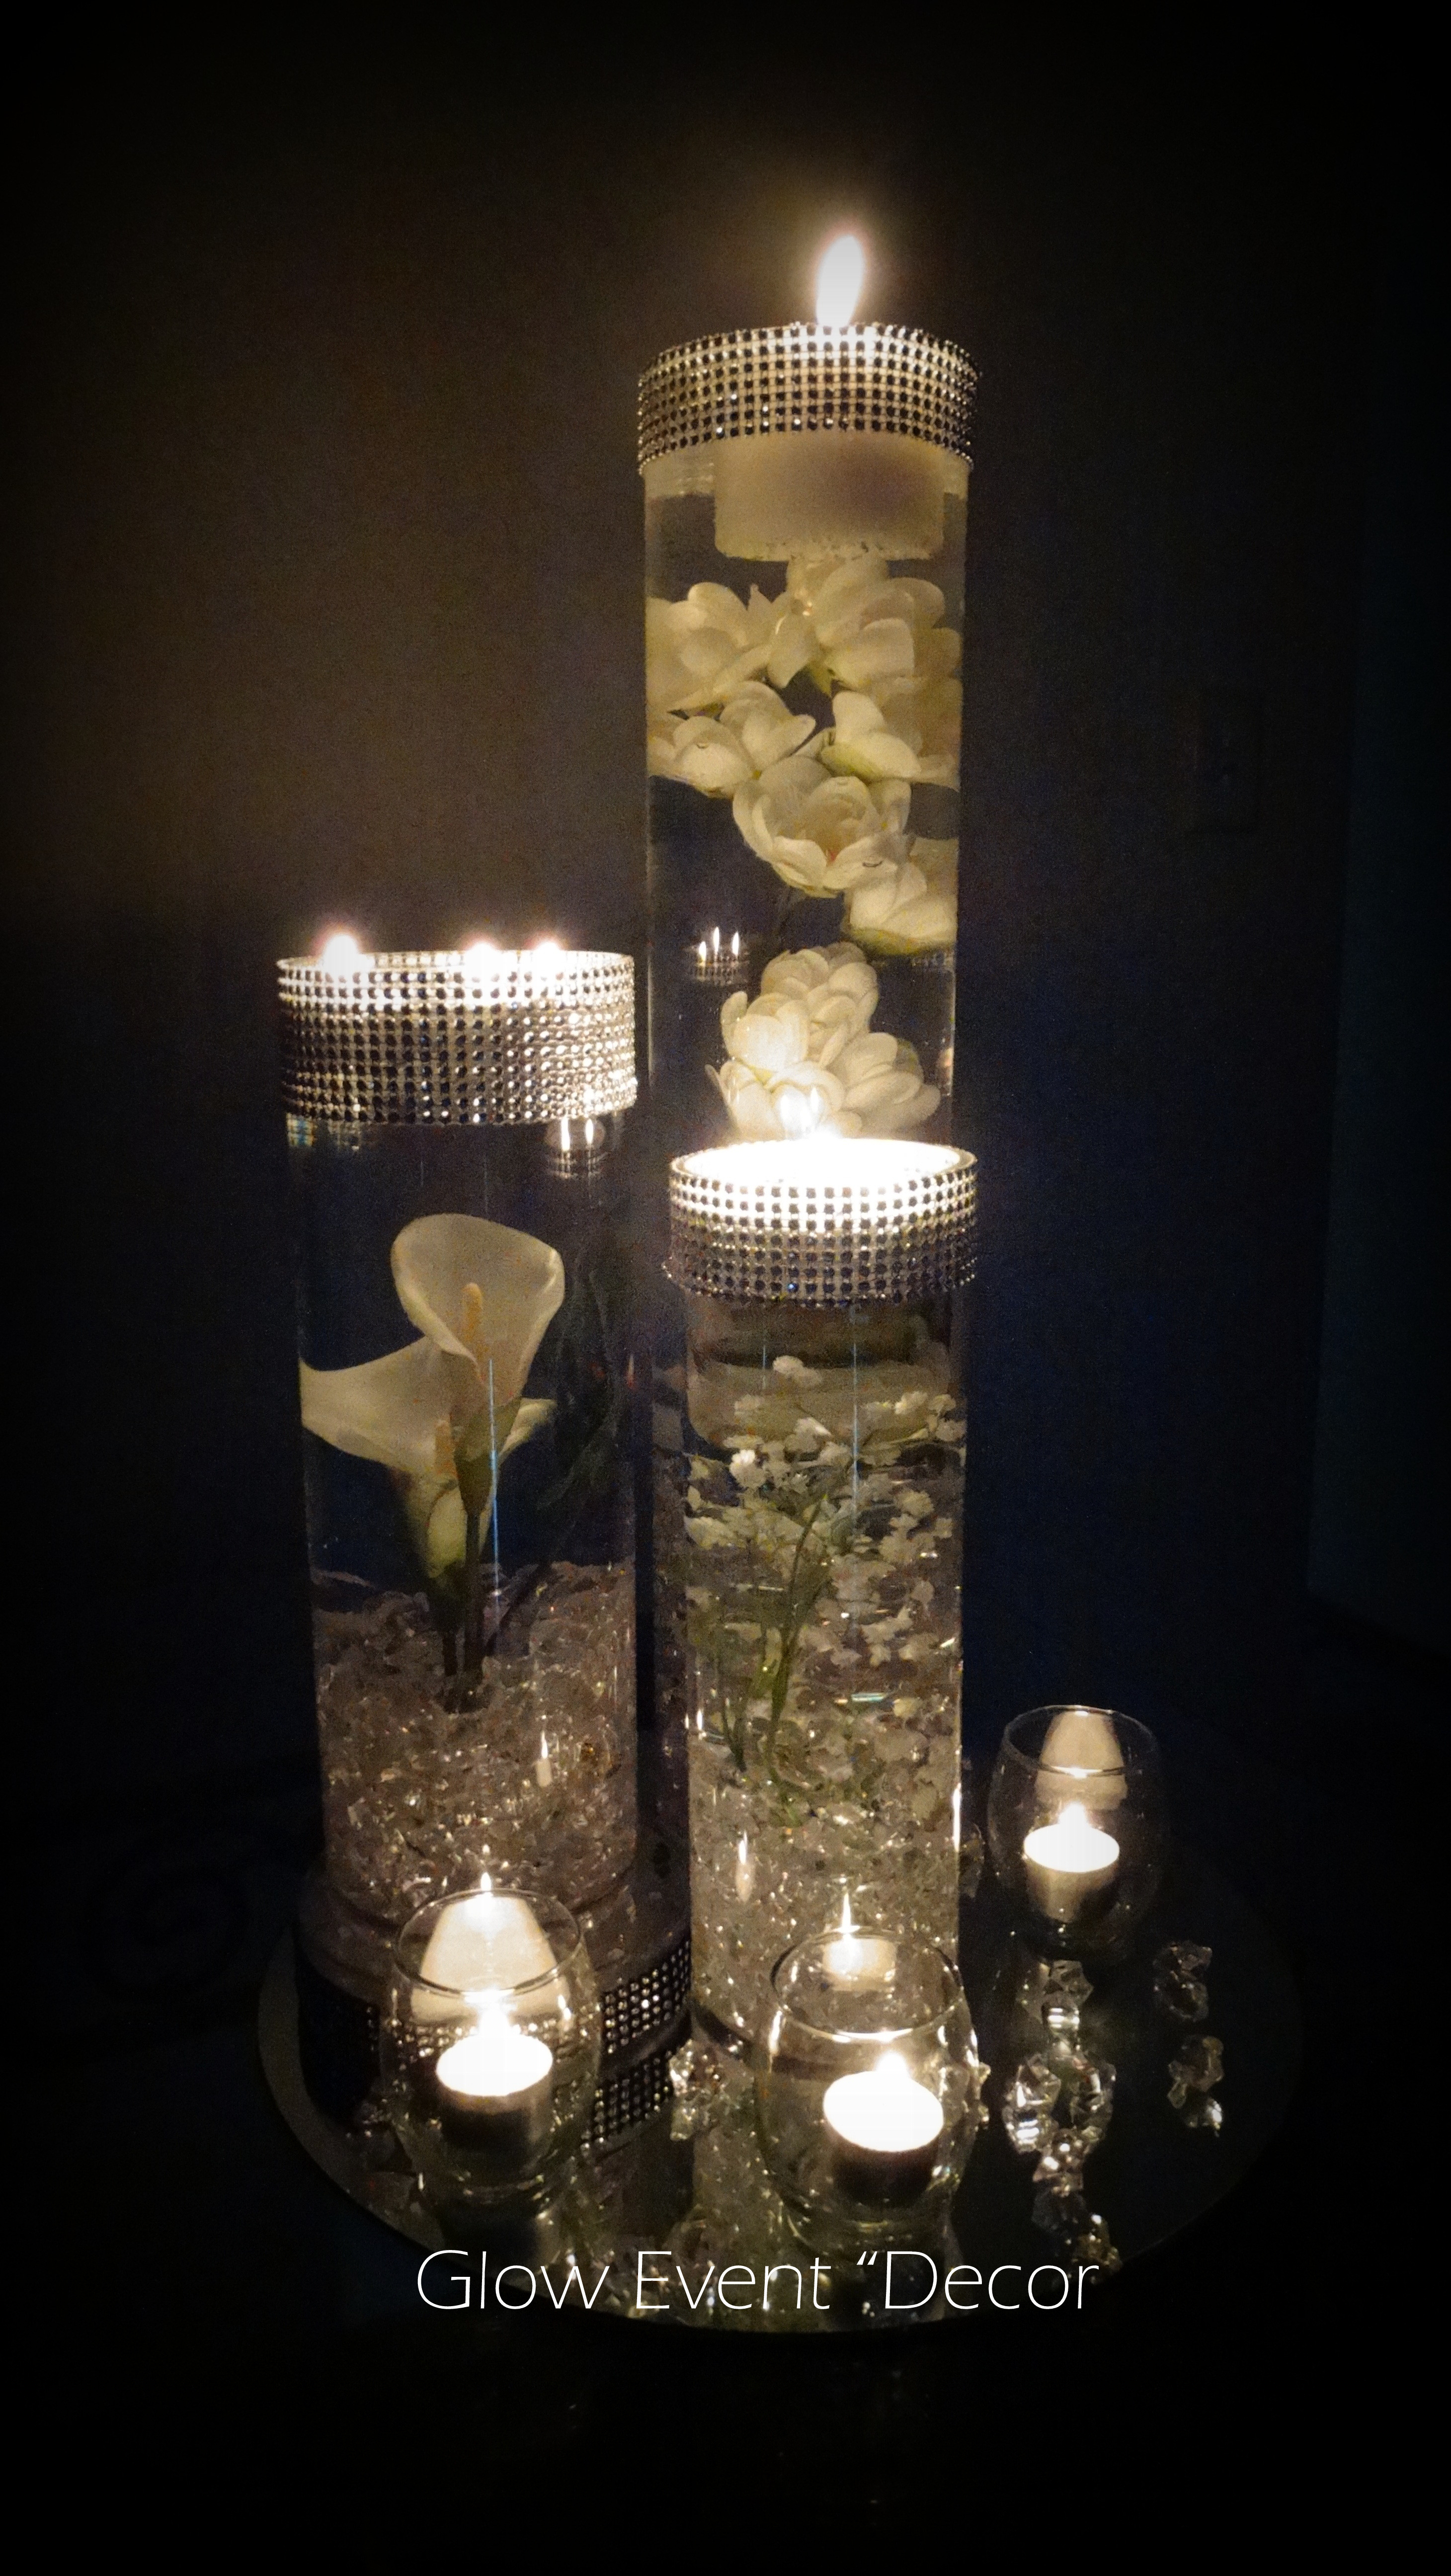 cylinder candle vase set of 3 of led orchid cylinder vase glow event decor in cylinder vase trio submerged lillies gyp sophlia bablies breath crystal garland for bridal